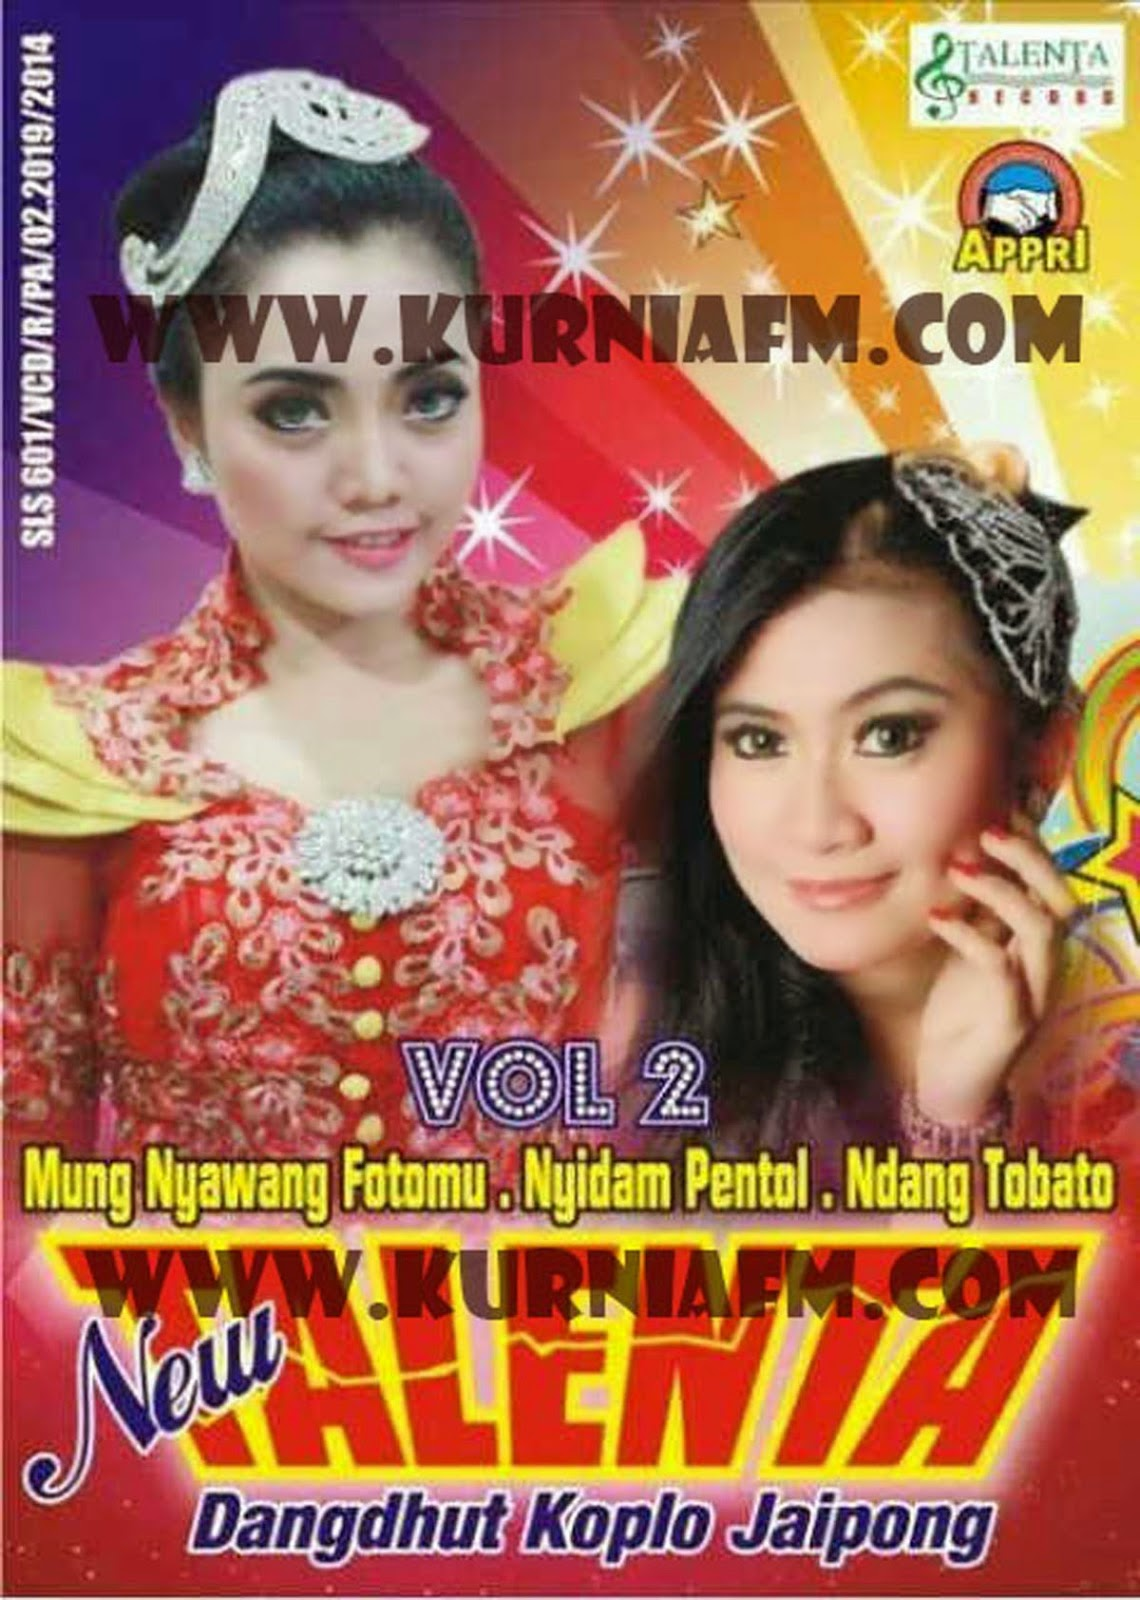 Download Mp3 Dangdut Koplo Album New Talenta Vol 2 | NDRUJU TUMPUK